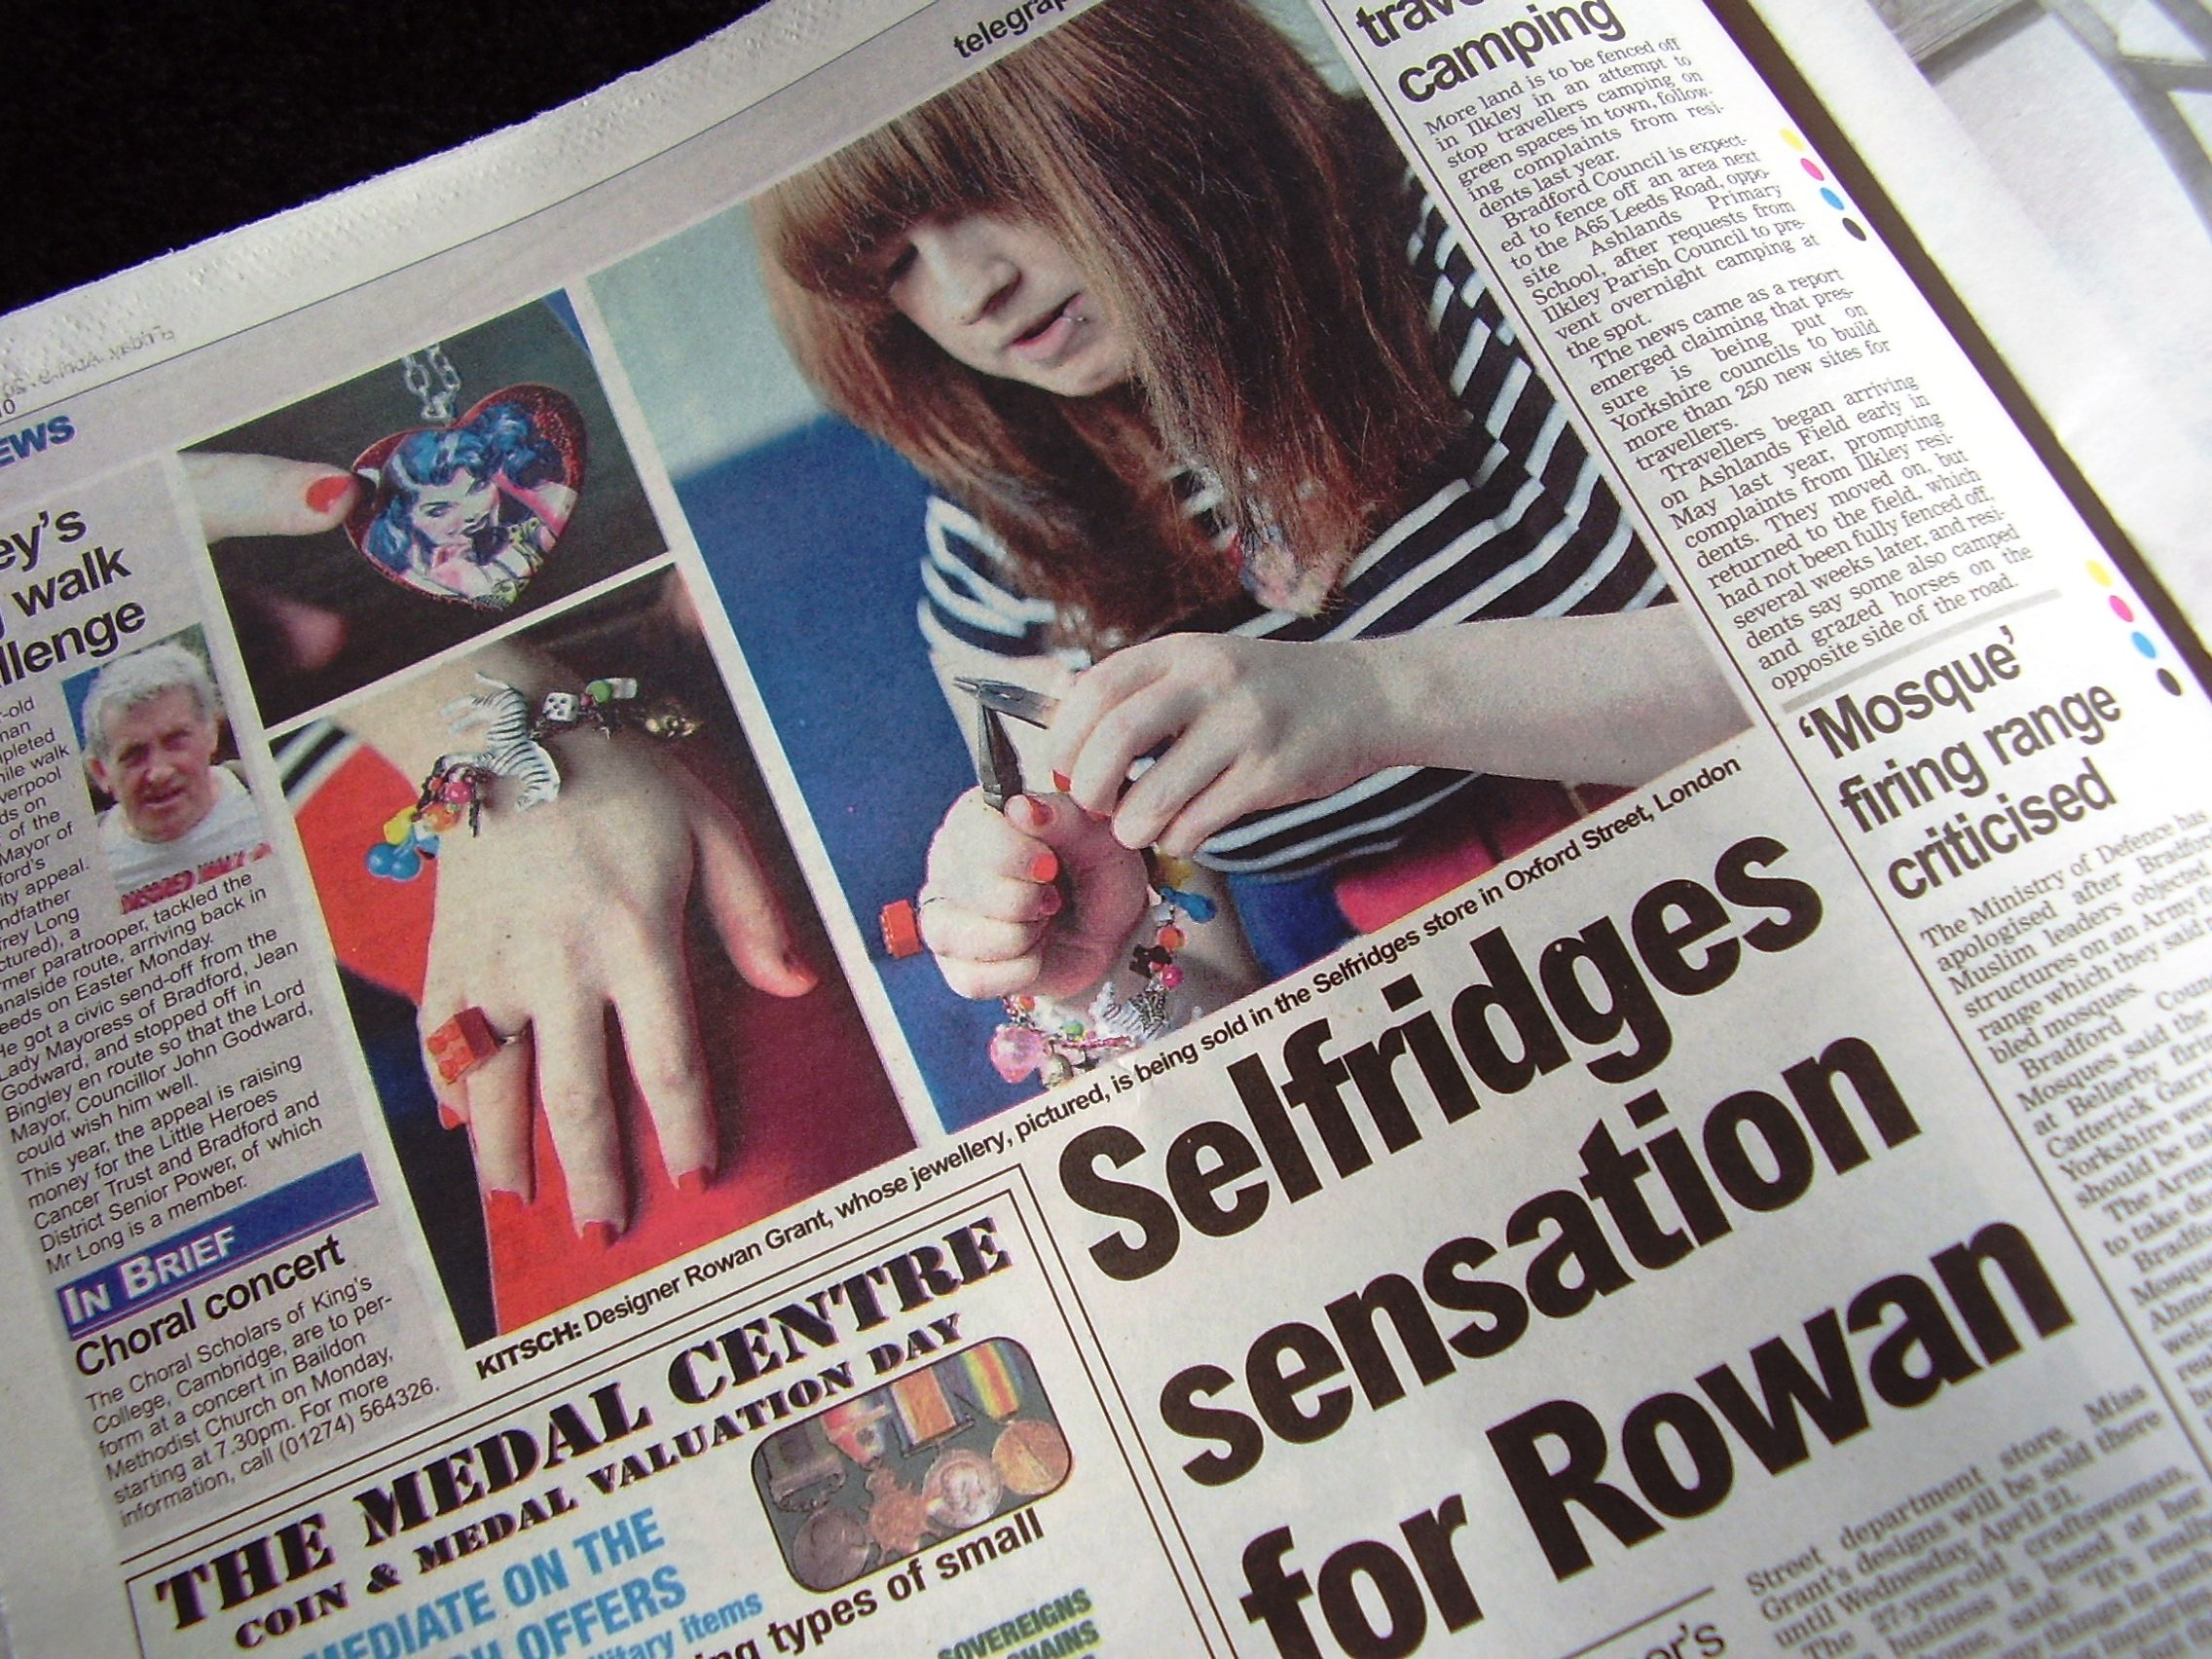 Selfridges sensation for Rowan